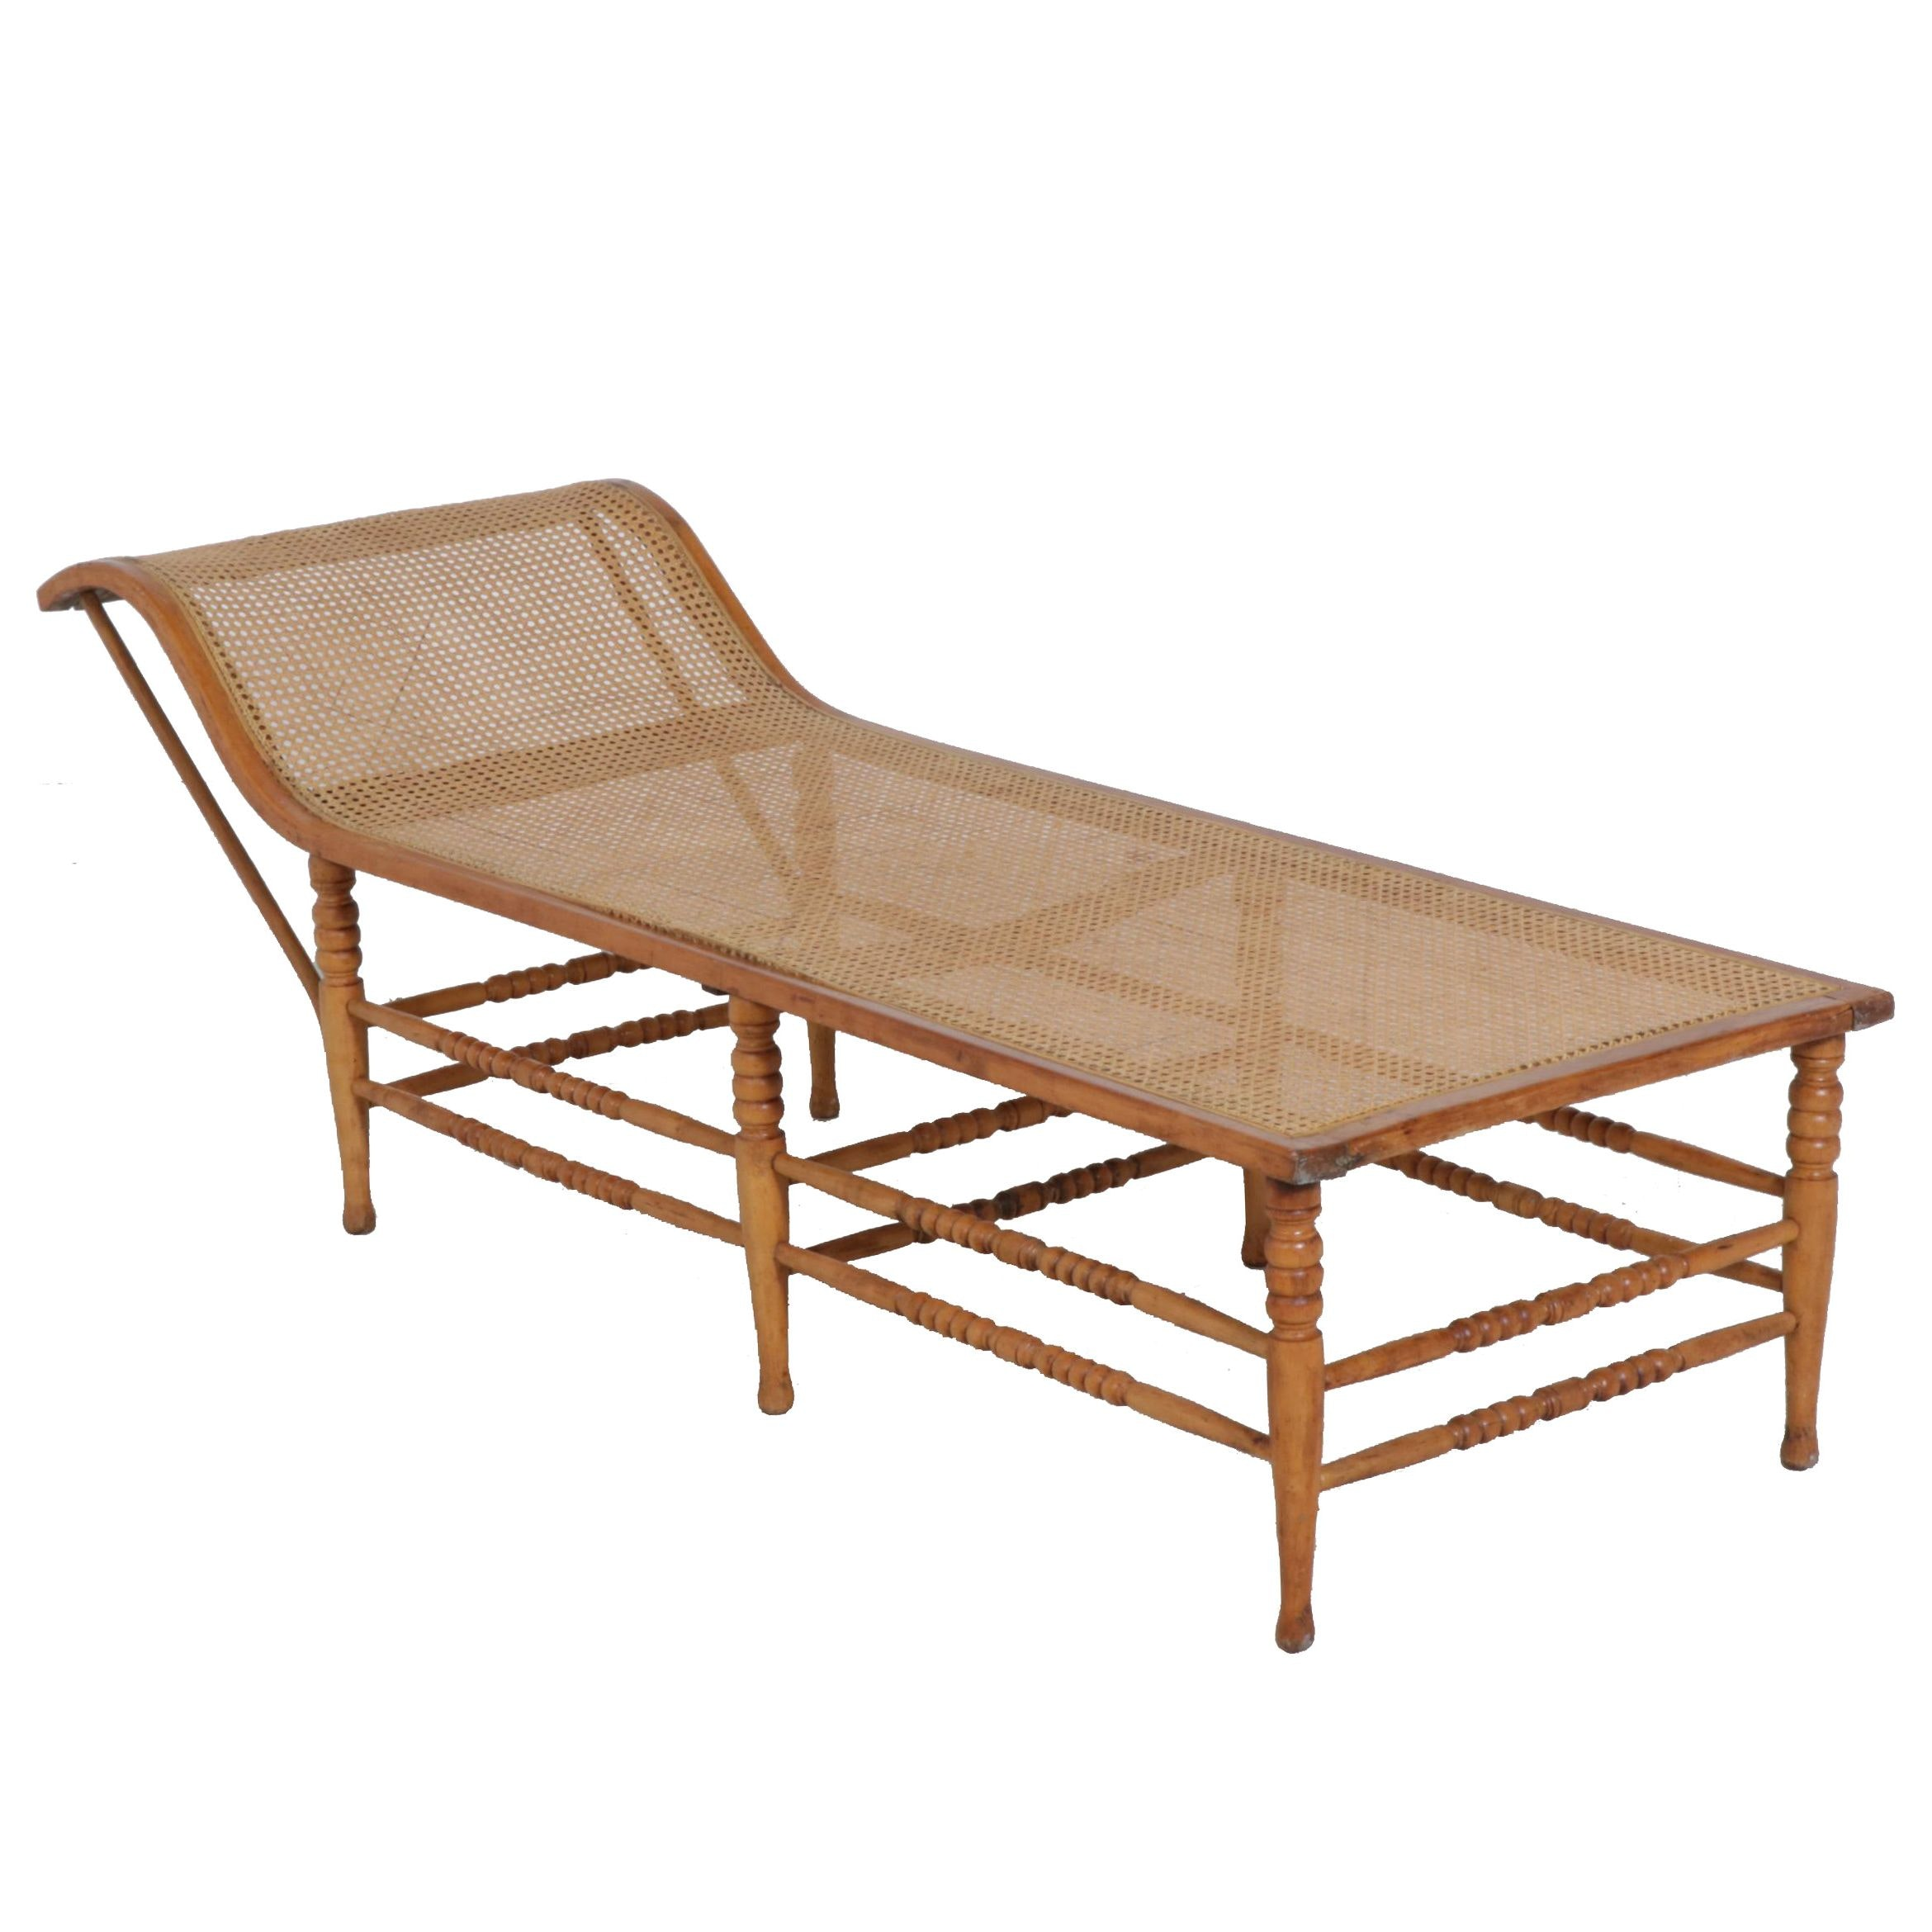 Caned Bentwood Chaise Lounge, Early 20th Century